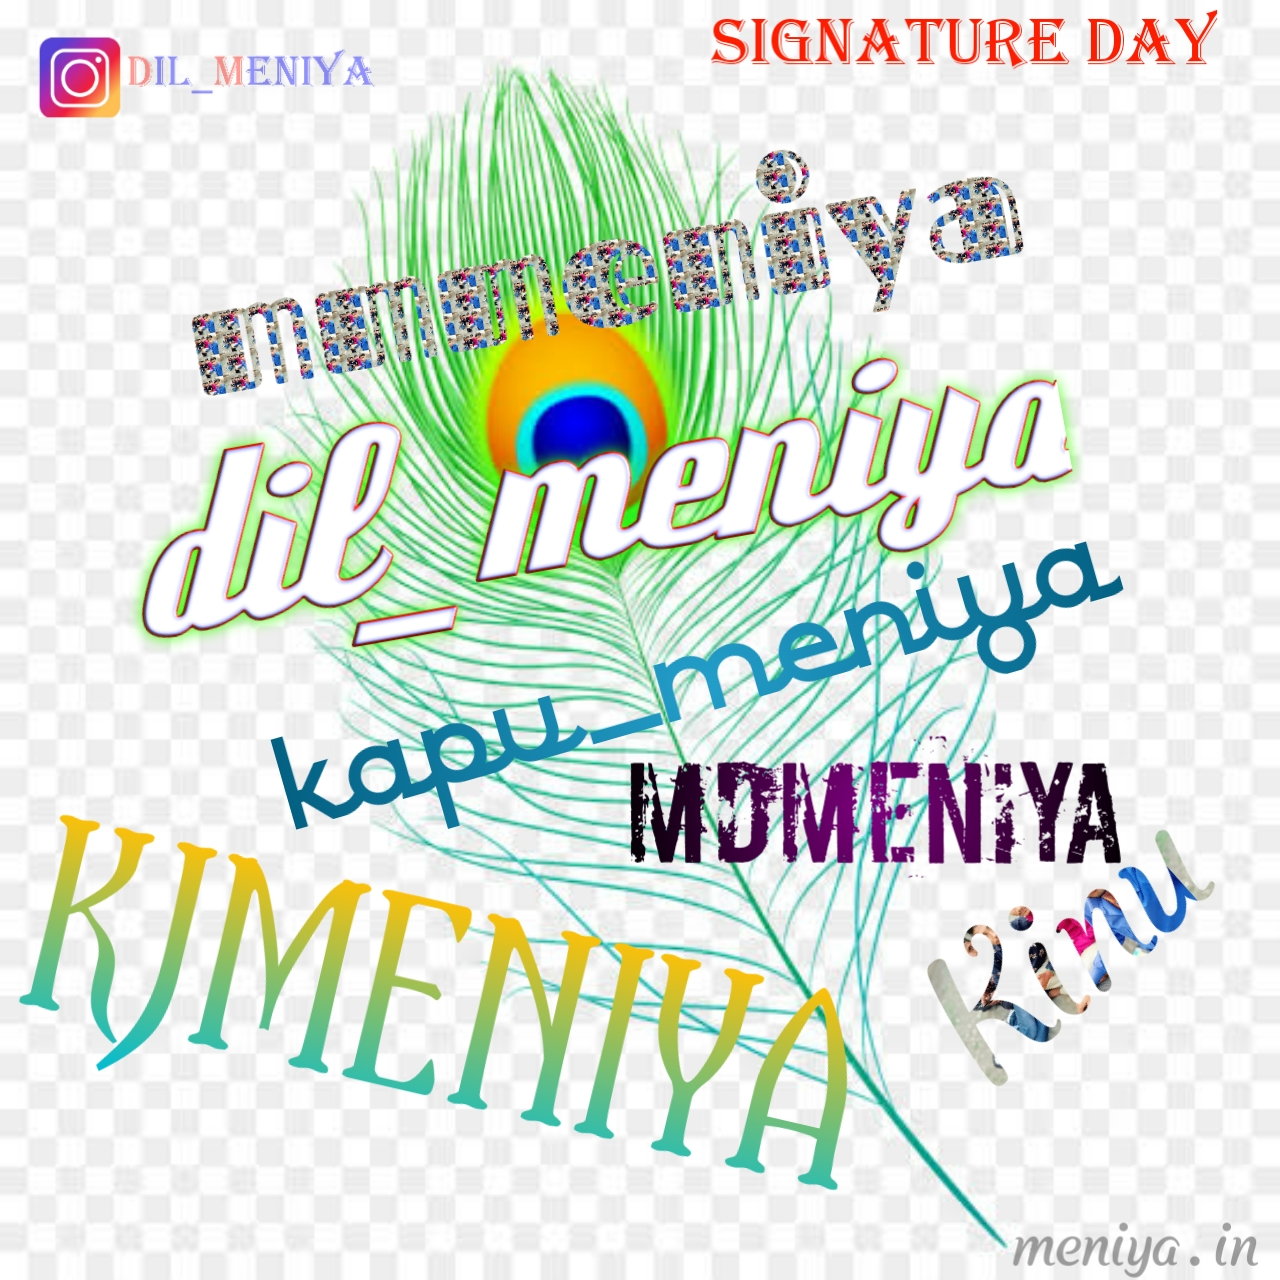 Signature Day dil_meniya